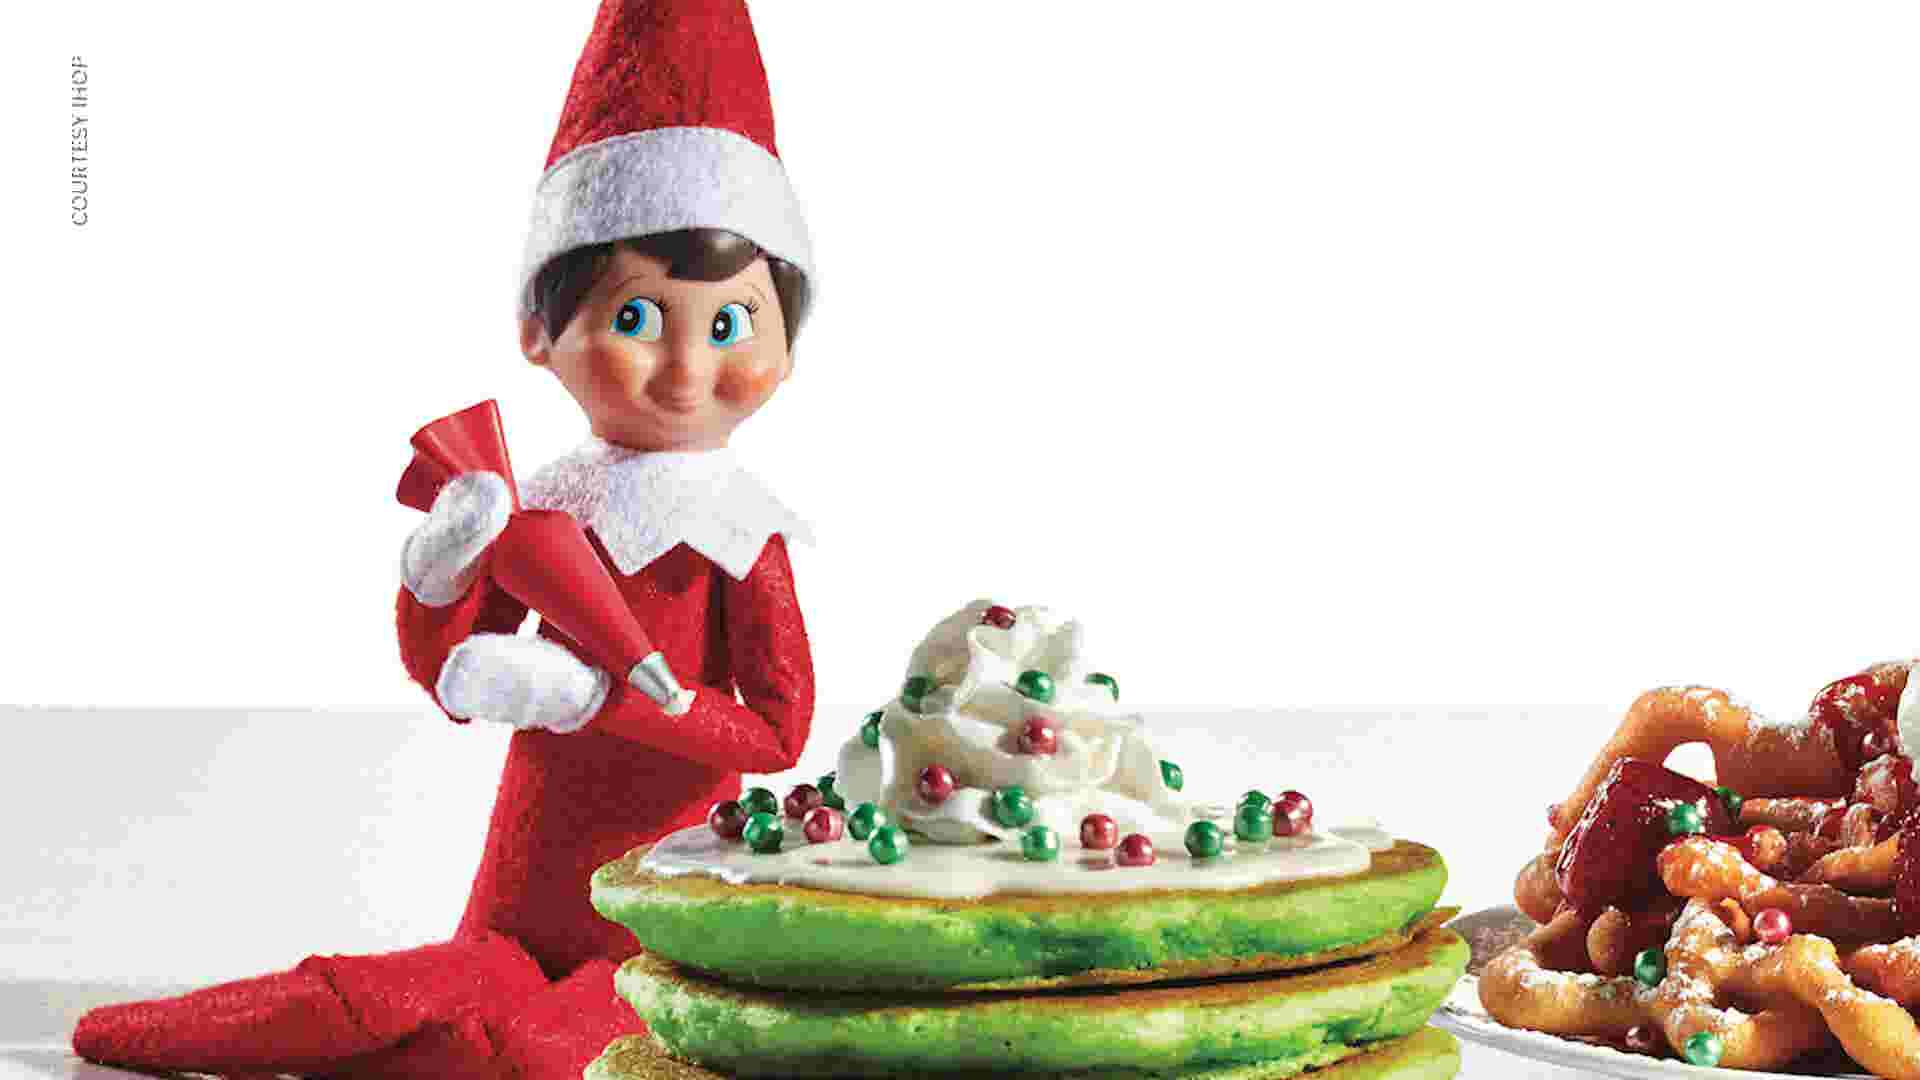 IHOP partnered with Elf on the Shelf